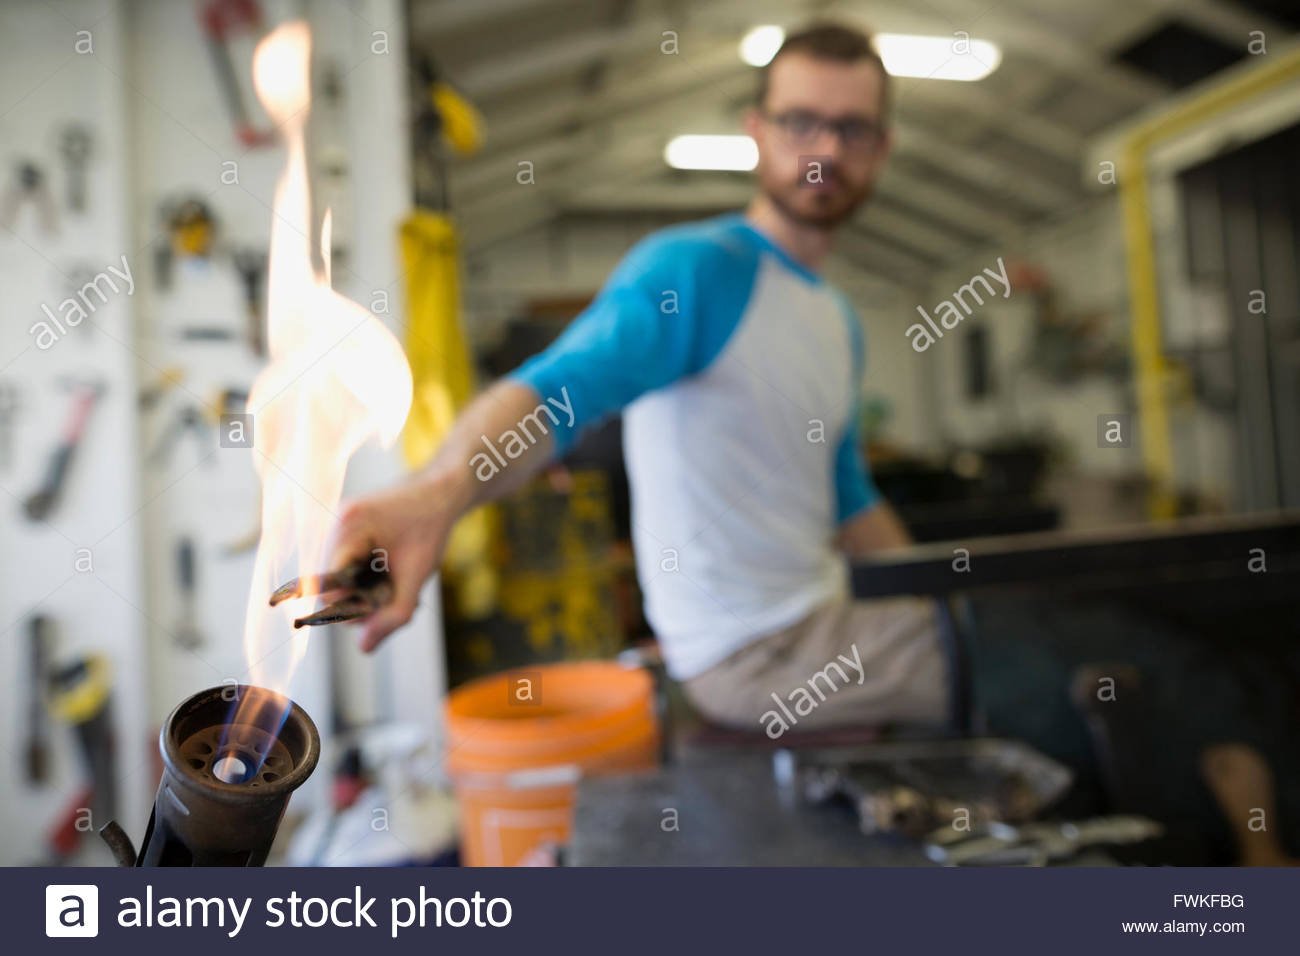 Glassblower heating tongs in flame - Stock Image